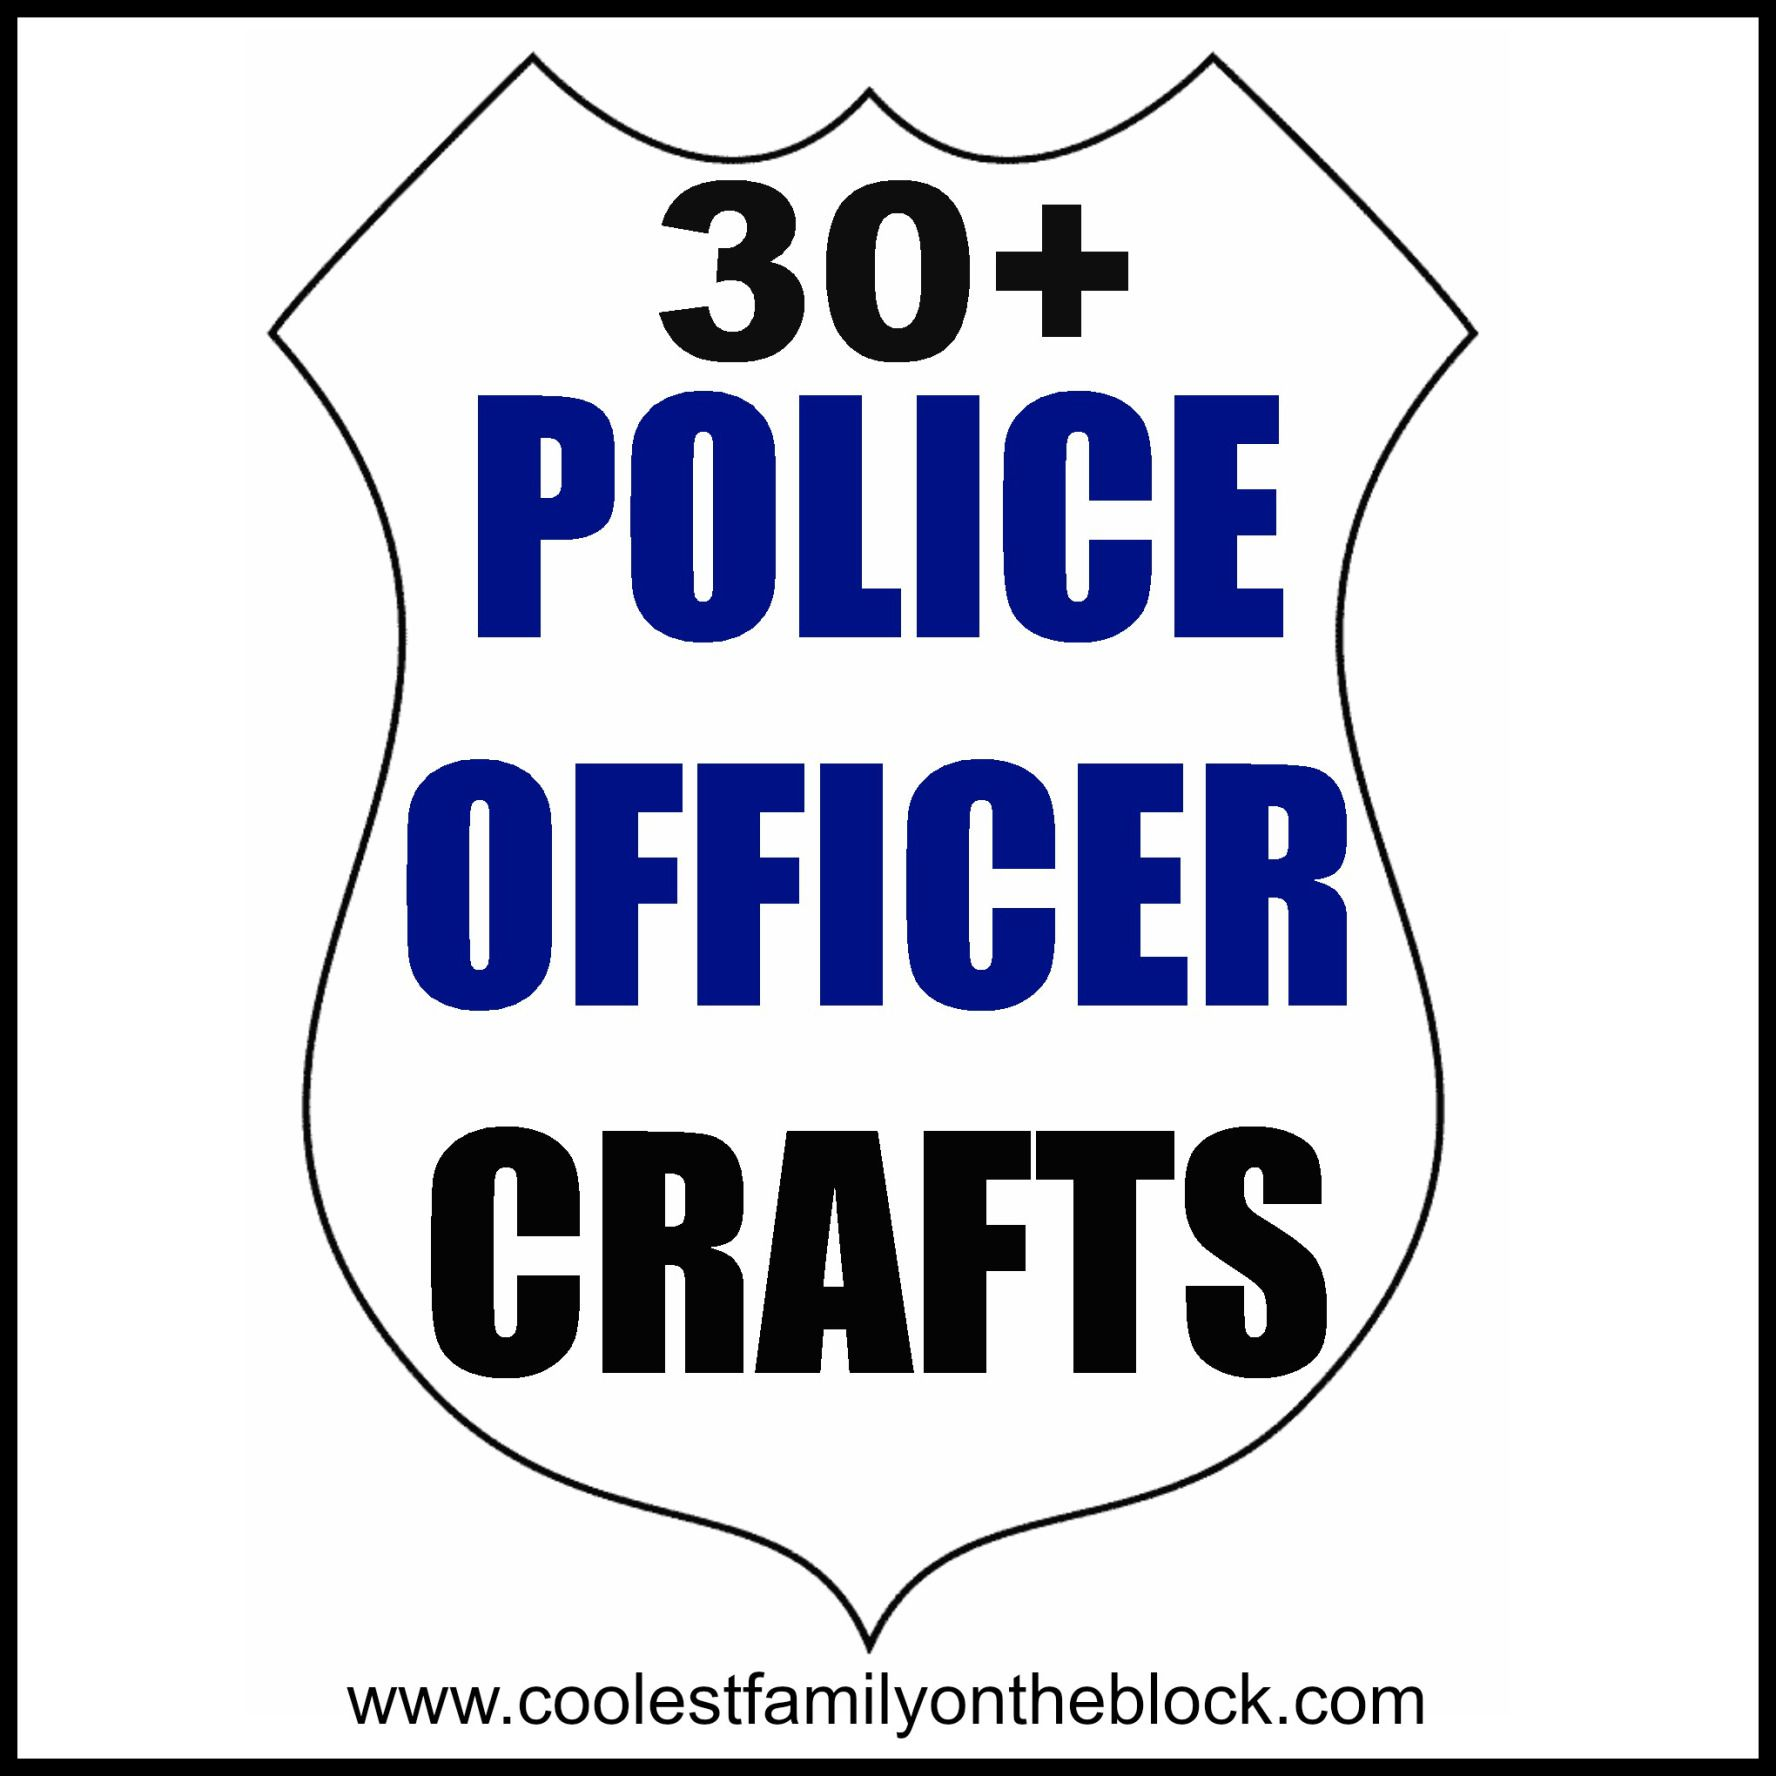 Police Officer Crafts